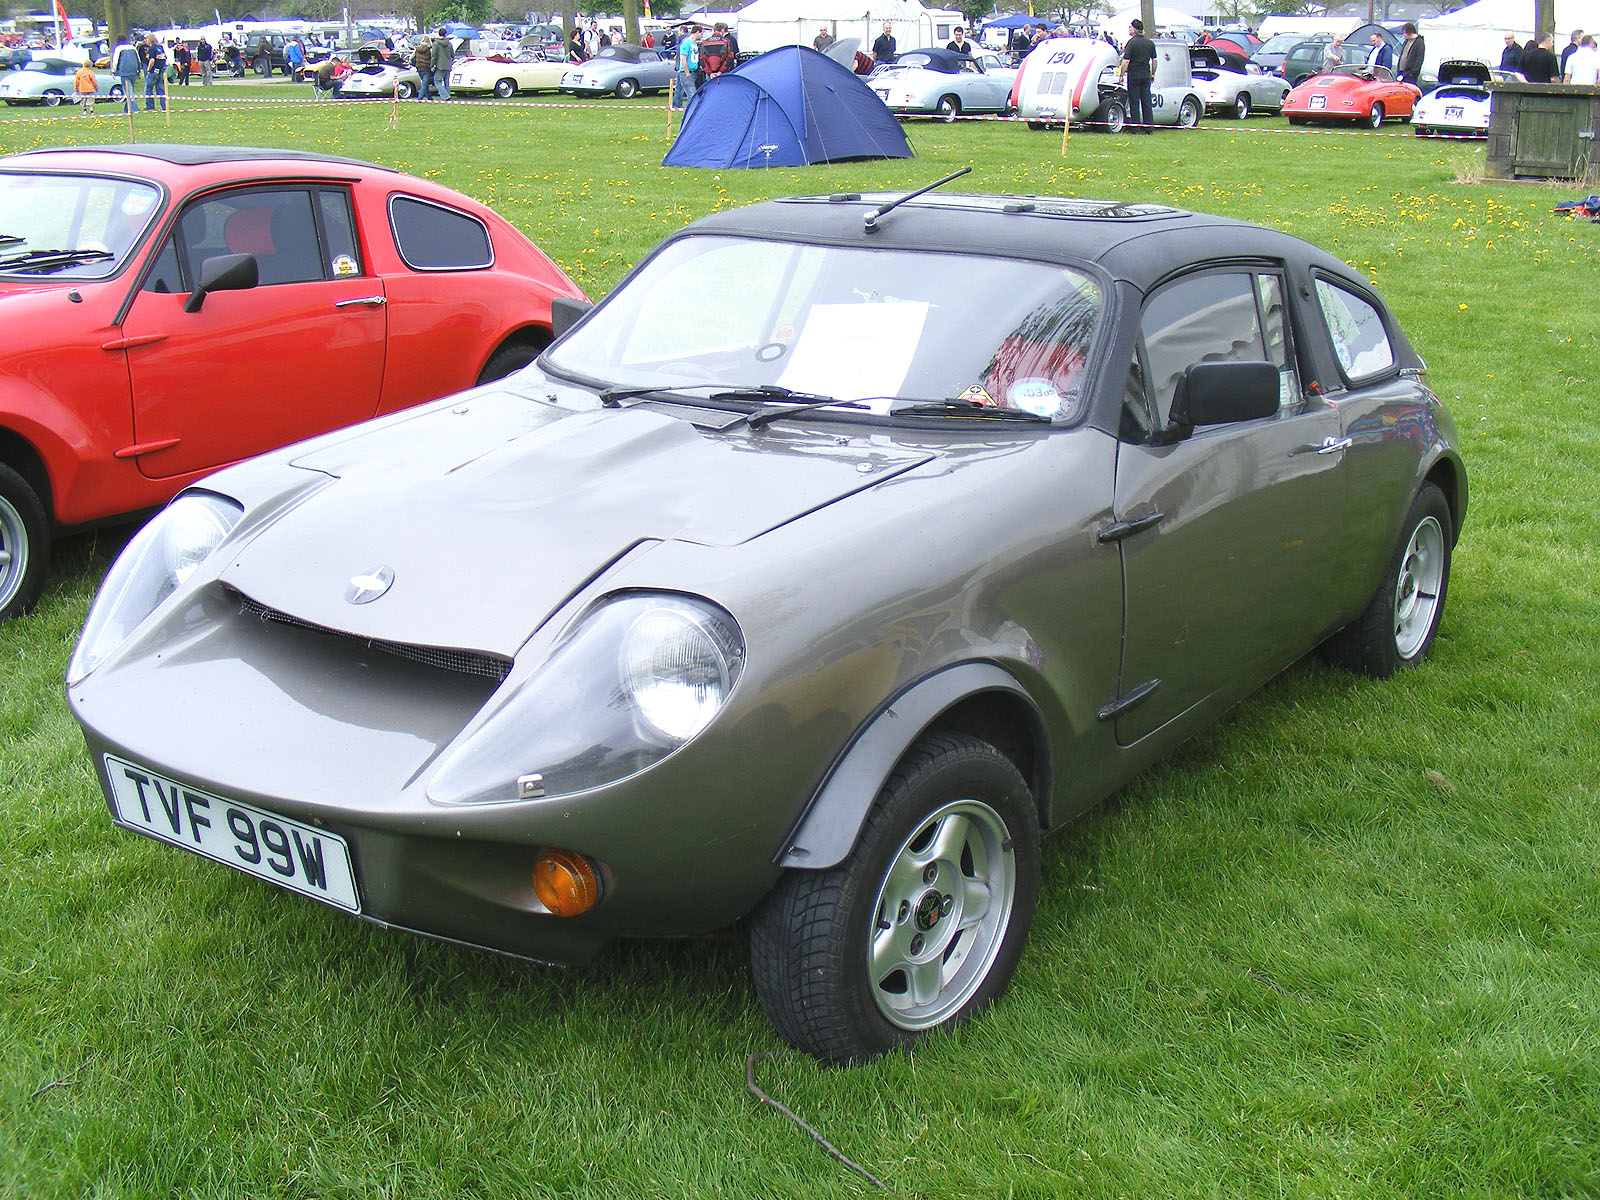 Image View - Grey Mini Marcos at Stoneleigh